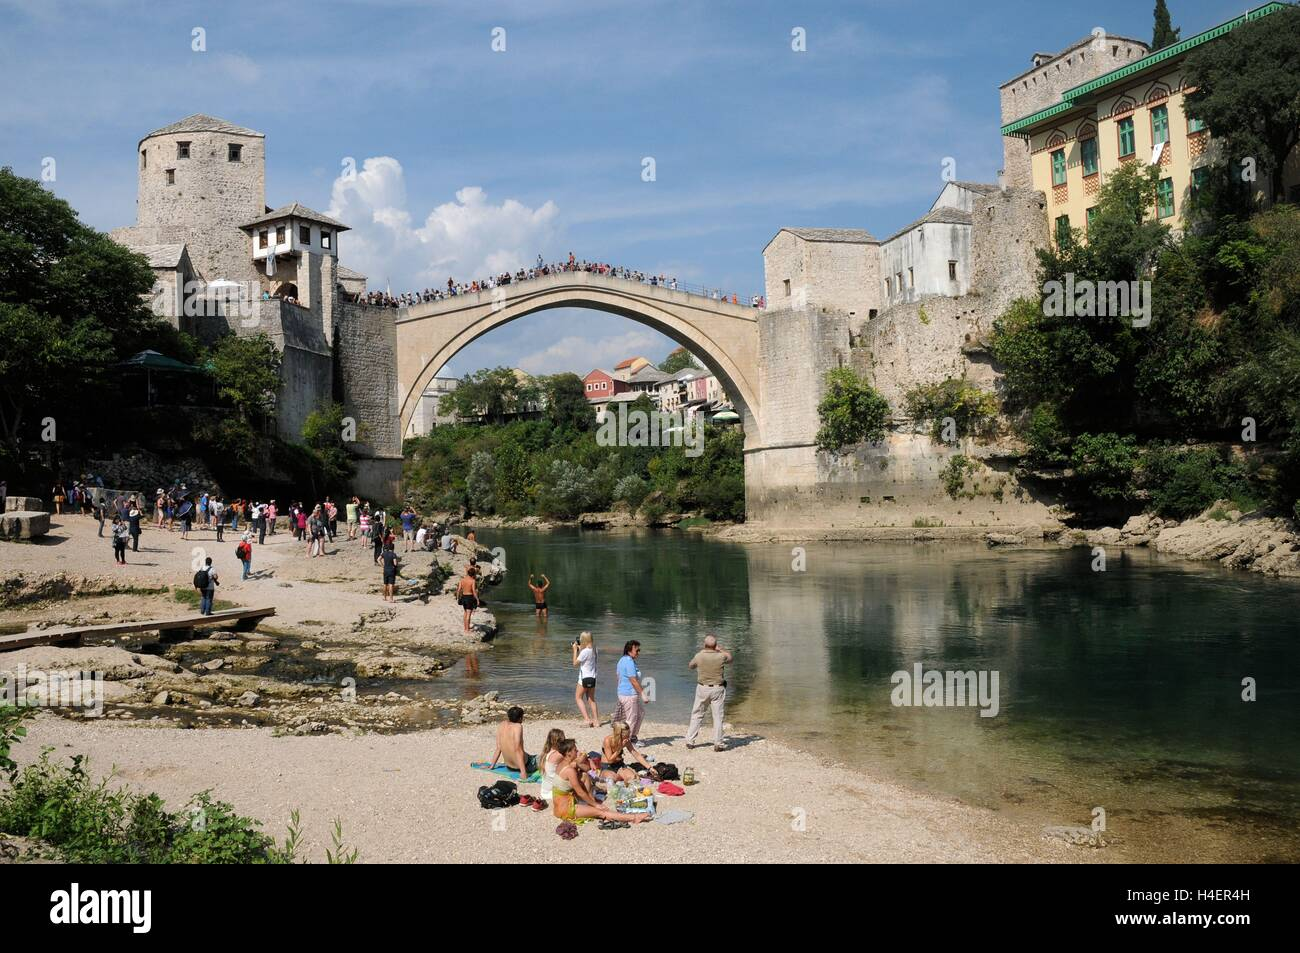 Relaxing by the riverside in front of the Stari Most bridge, Bosnia Herzegovina. - Stock Image